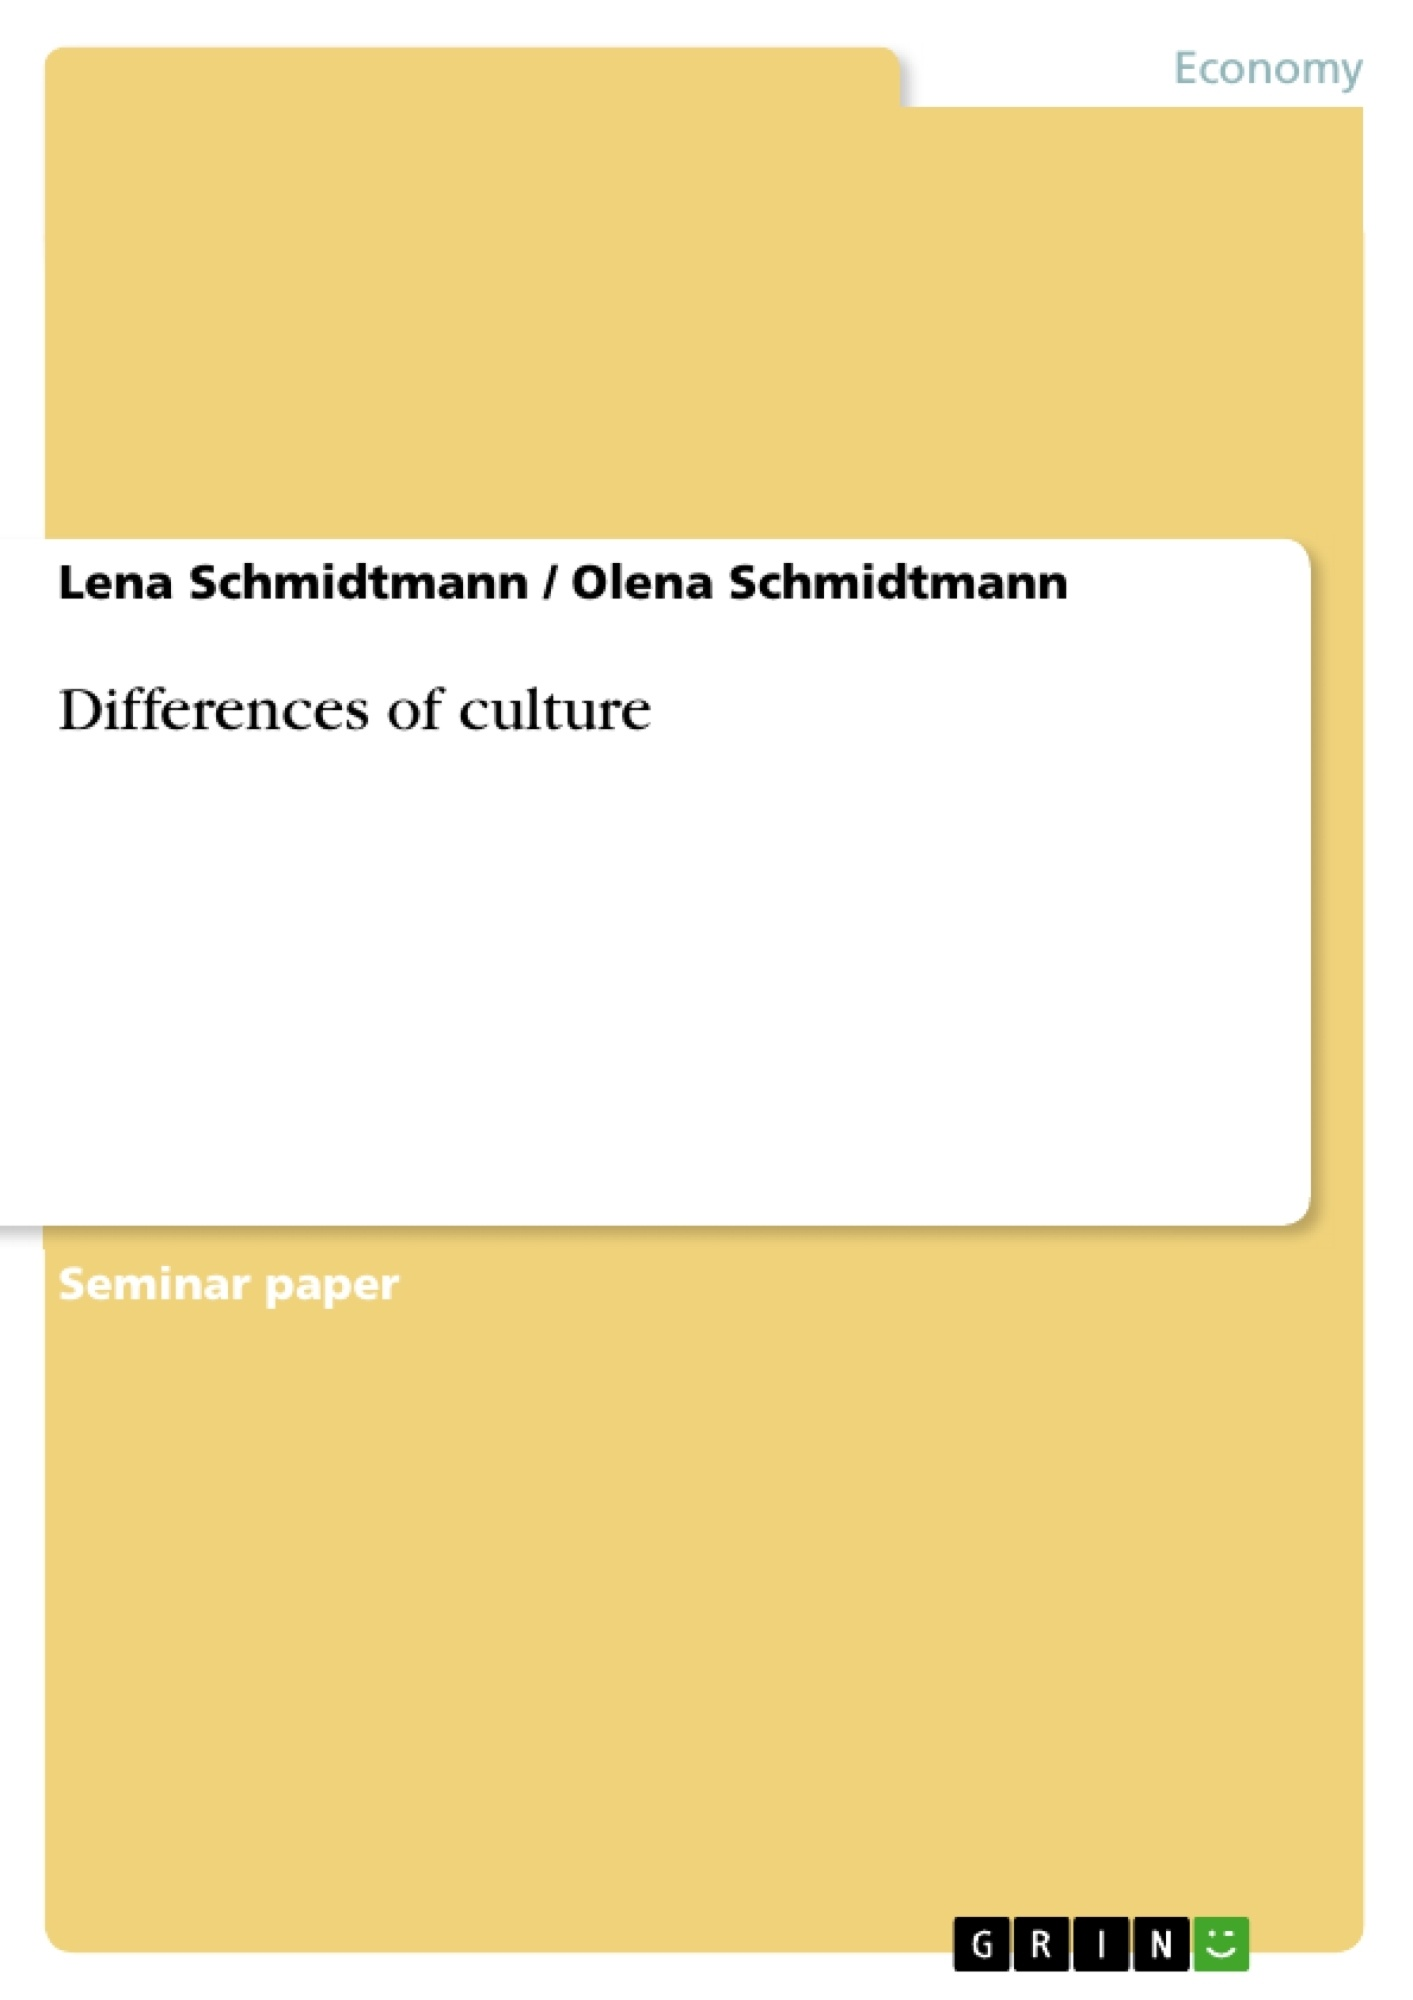 Title: Differences of culture